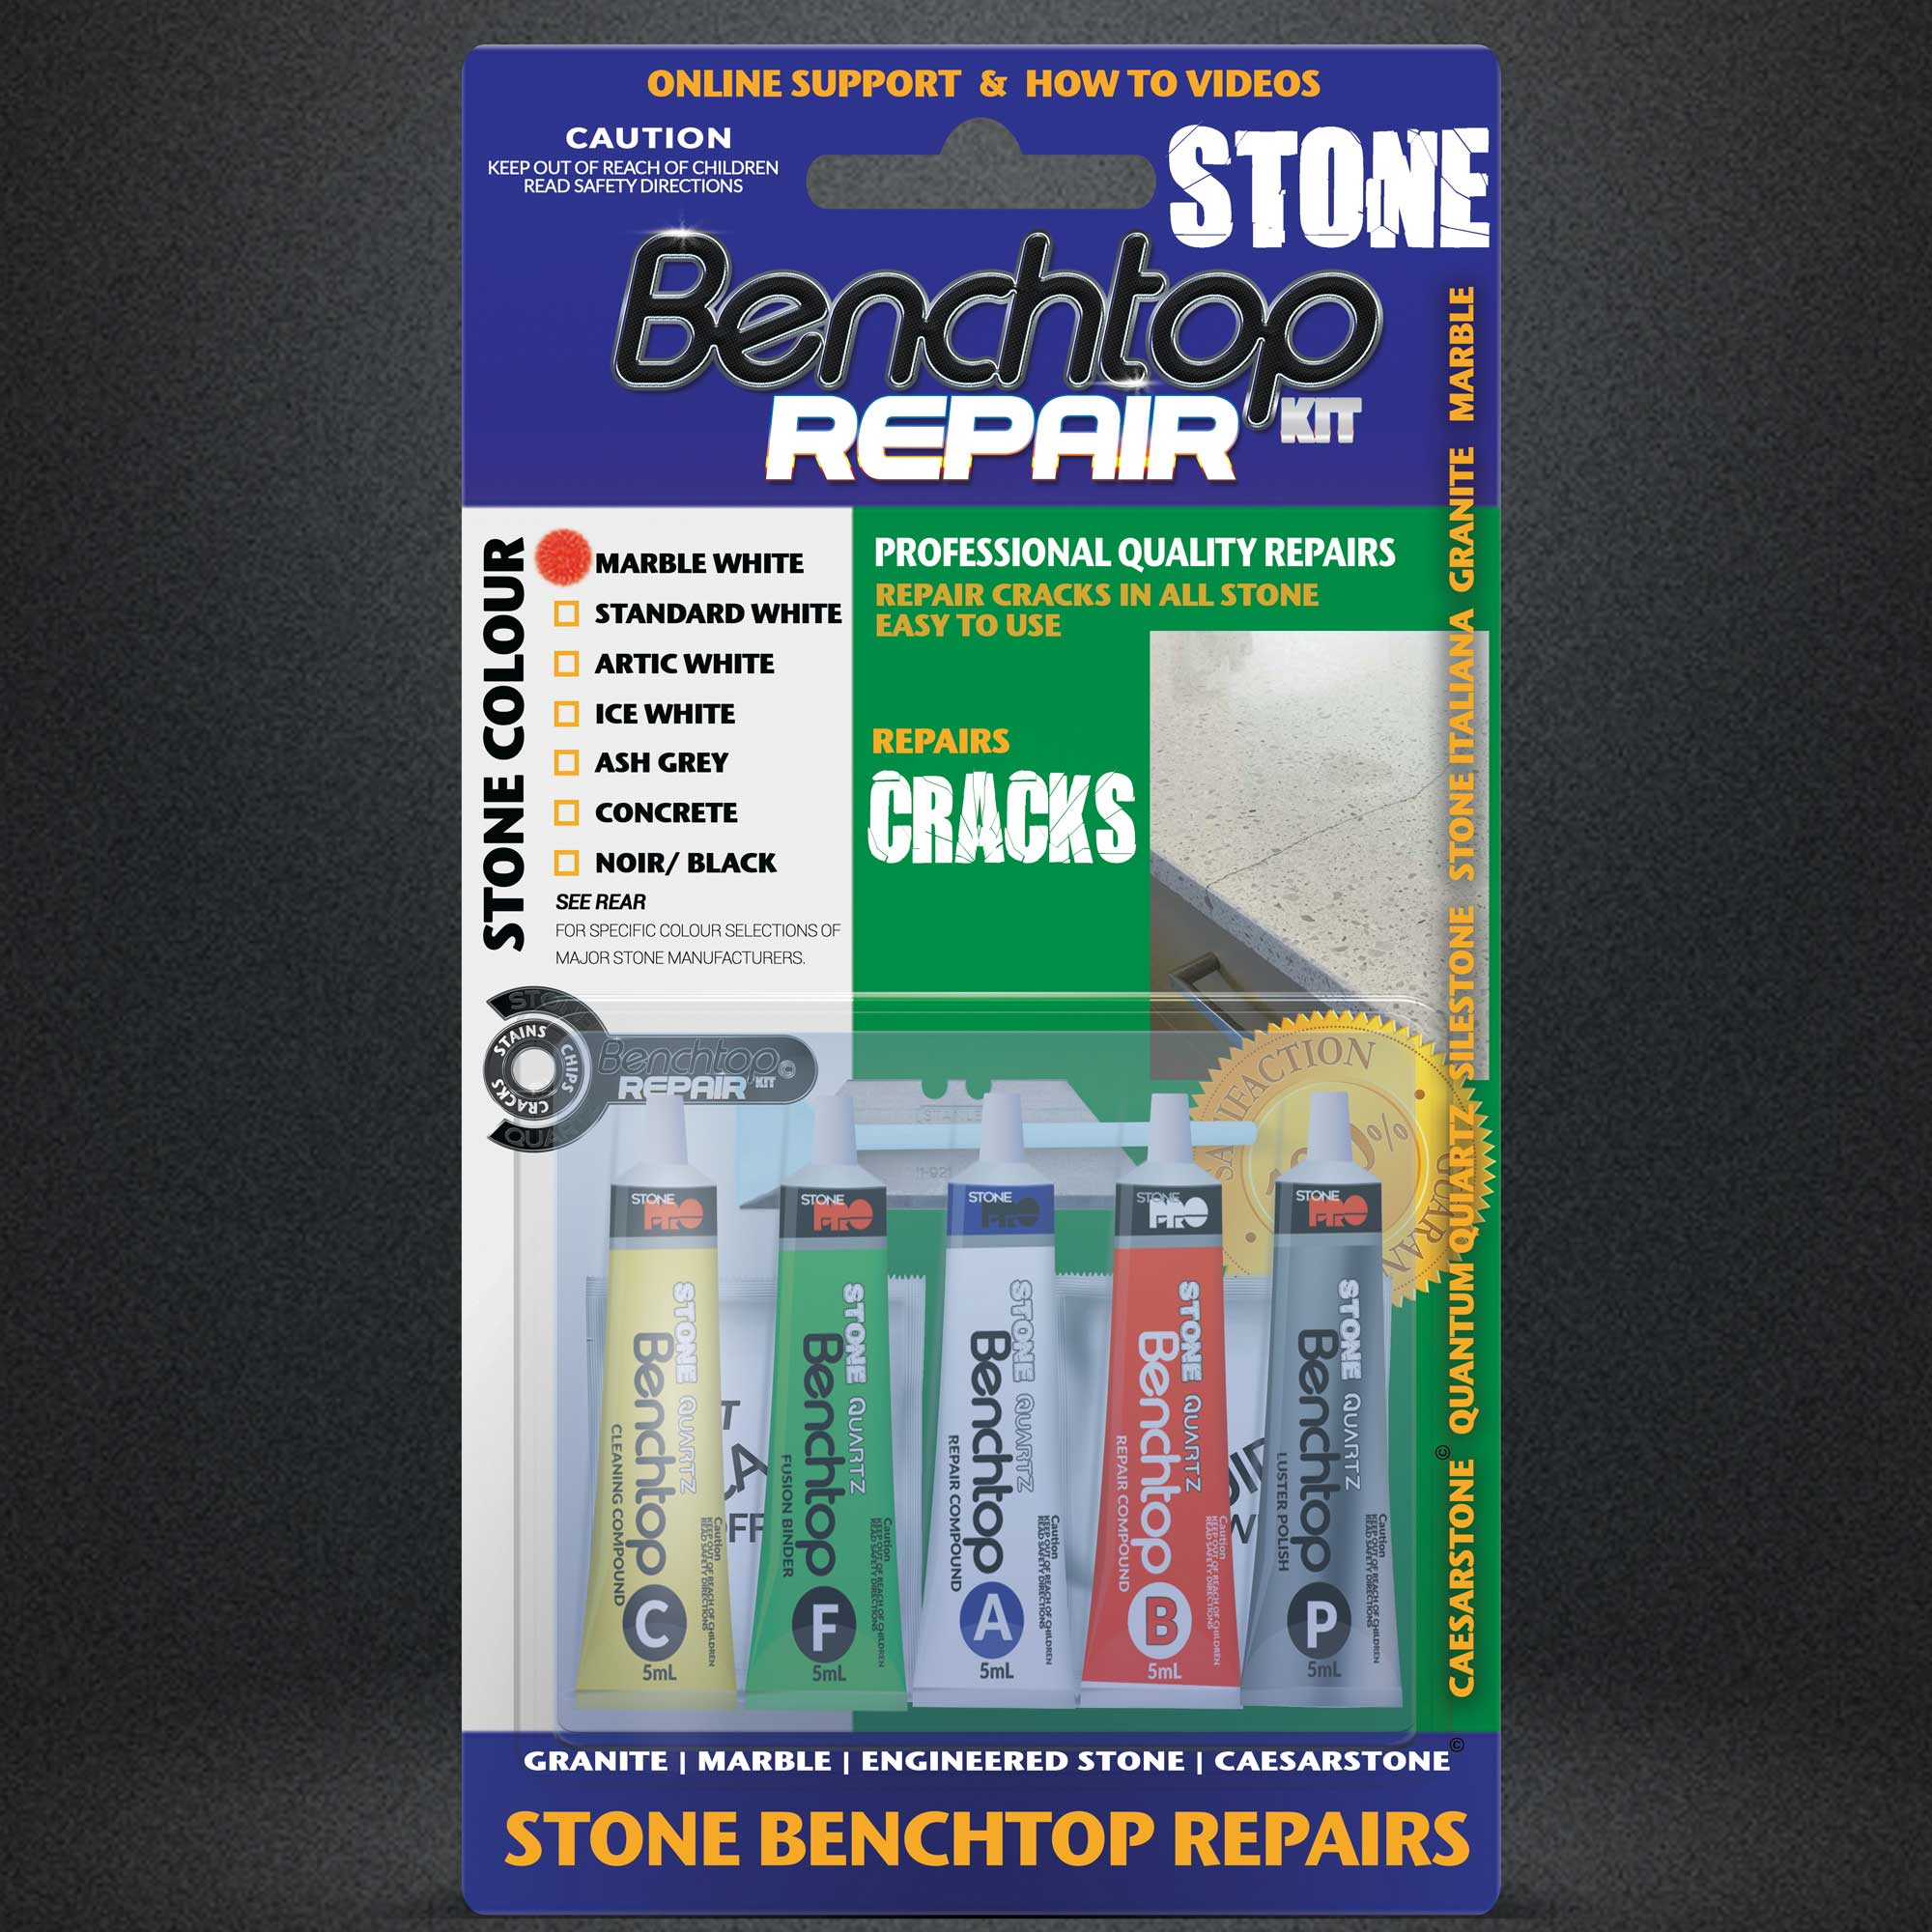 caesarstone crack repair kit bunnings stone benchtop crack repair kit seam repair kit counter repair kit benchtop repair kit stone crack repair granite crack repair USA CANADA SINGAPORE Brisbane Sydney Melbourne Perth Canberra Adelaide Hobart